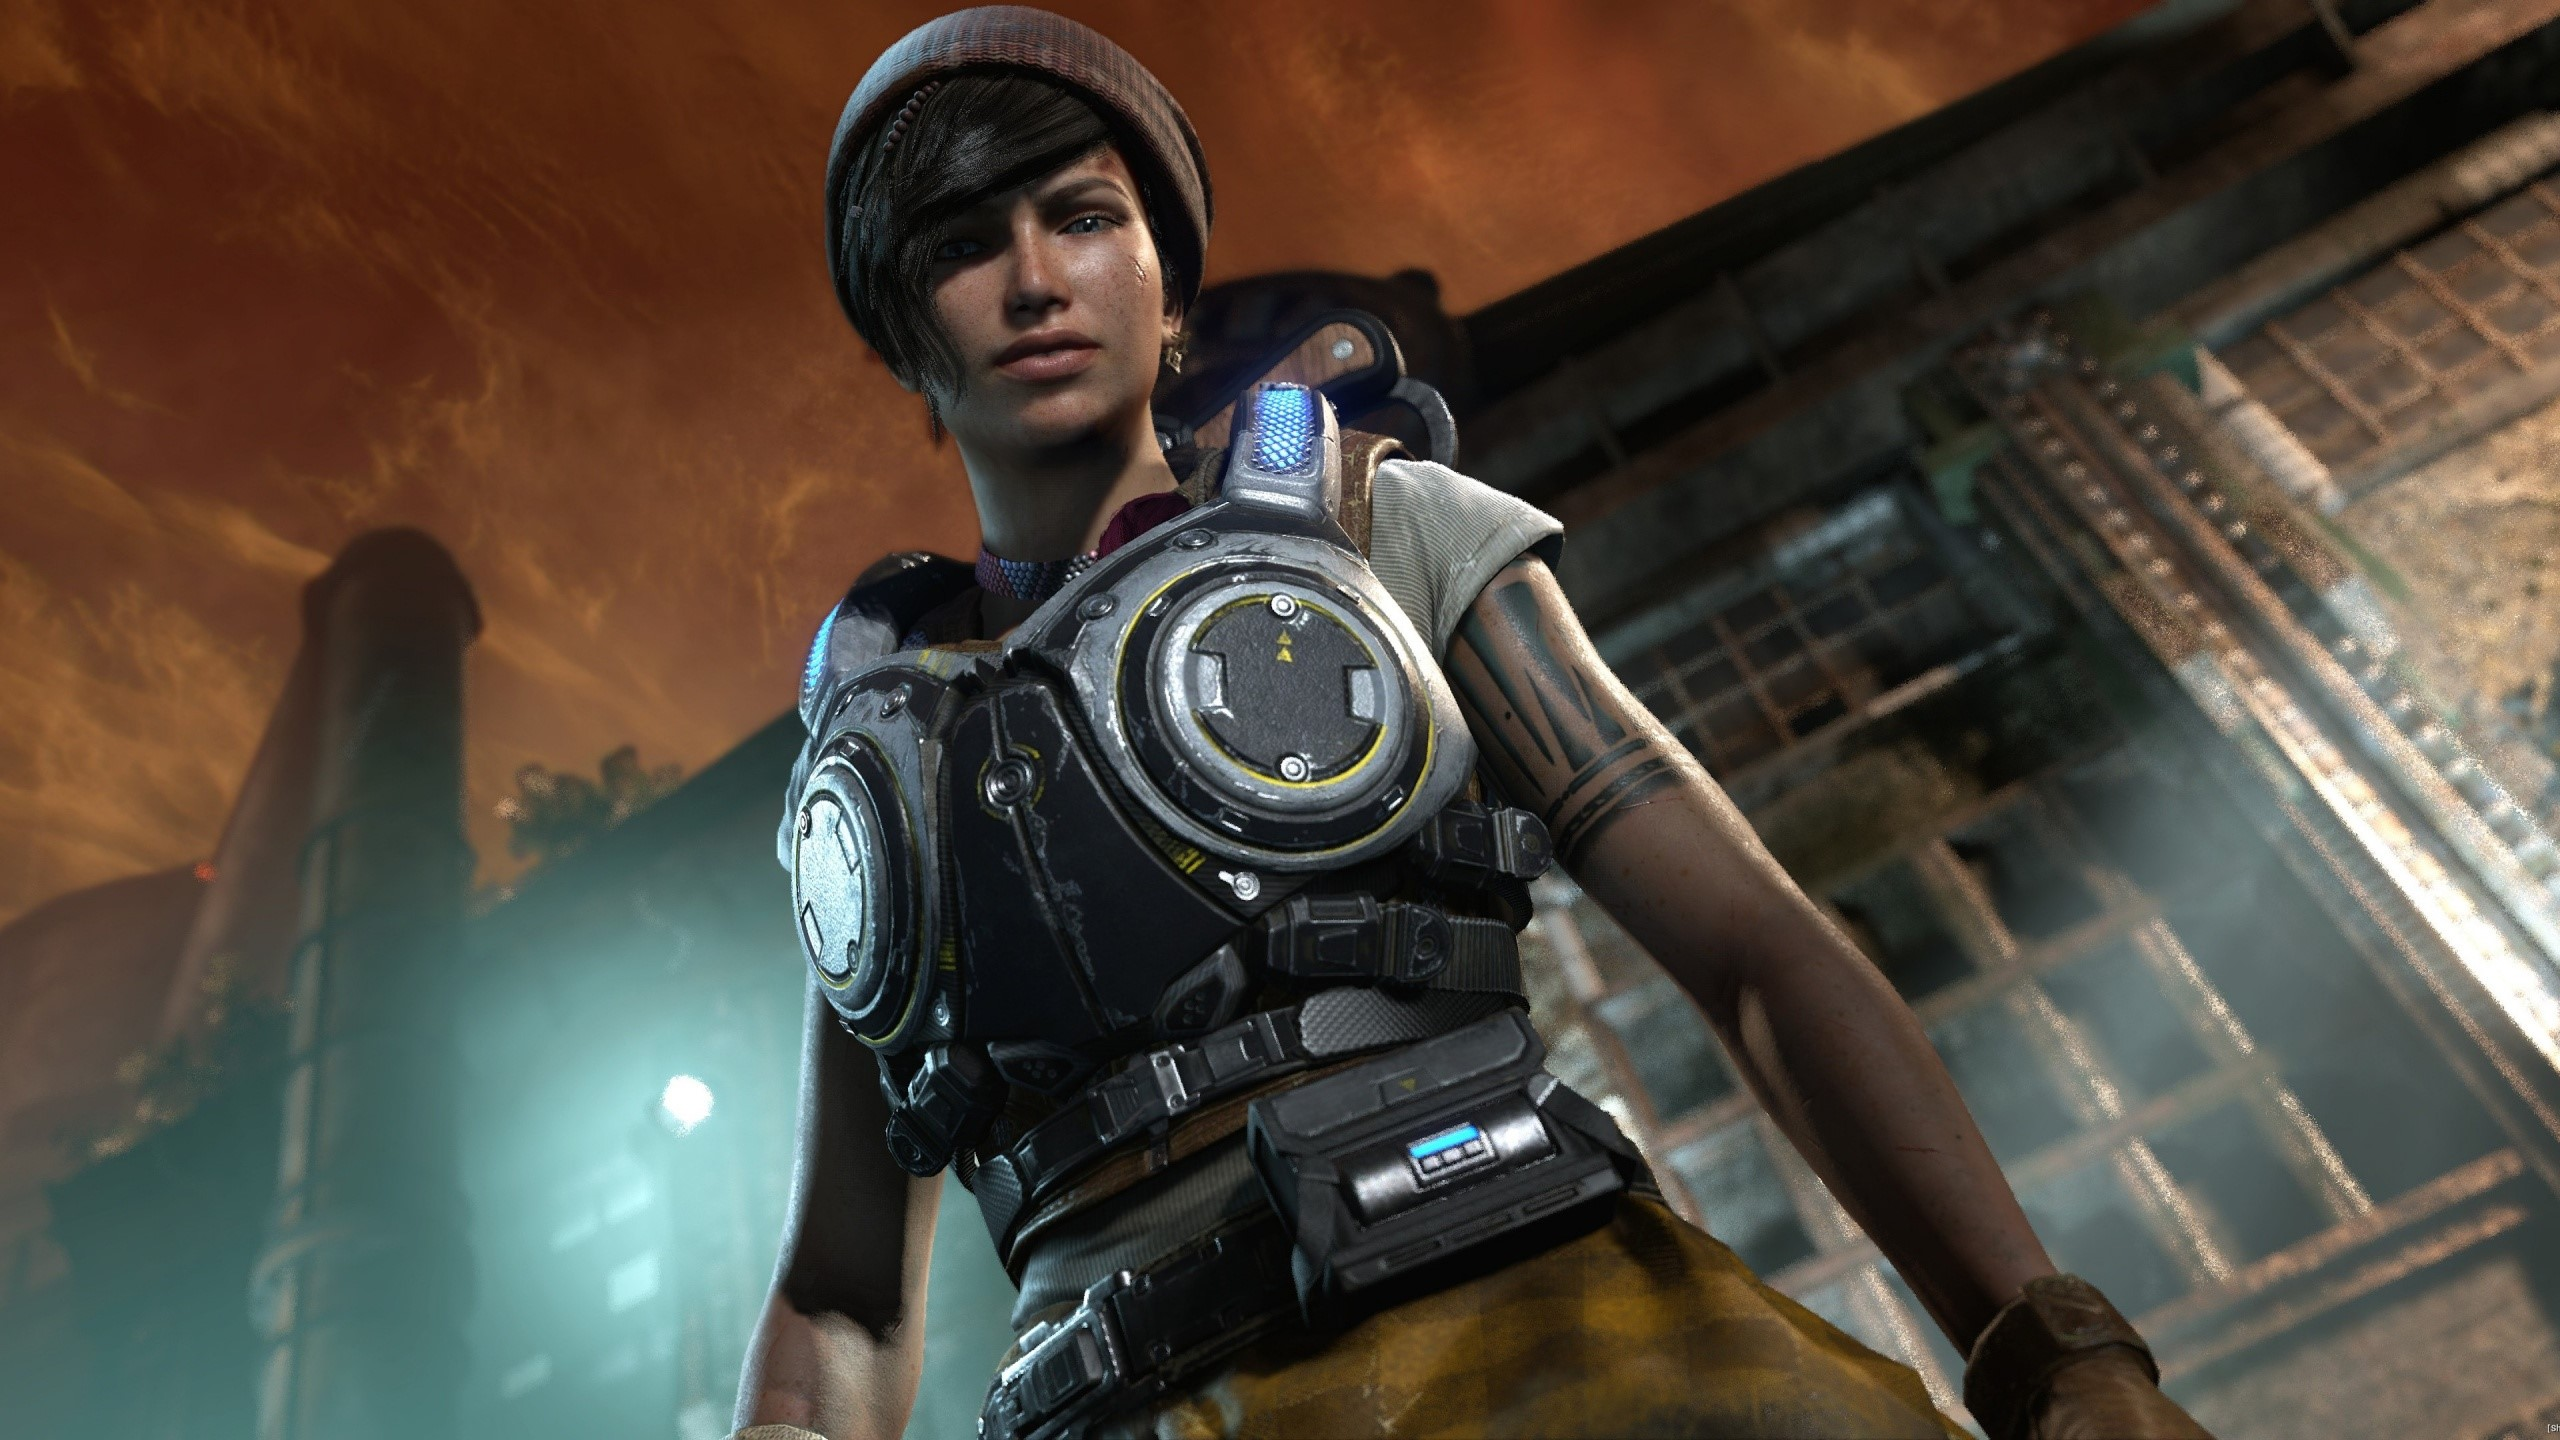 Wallpaper Kait Diaz from Gears Of War 4